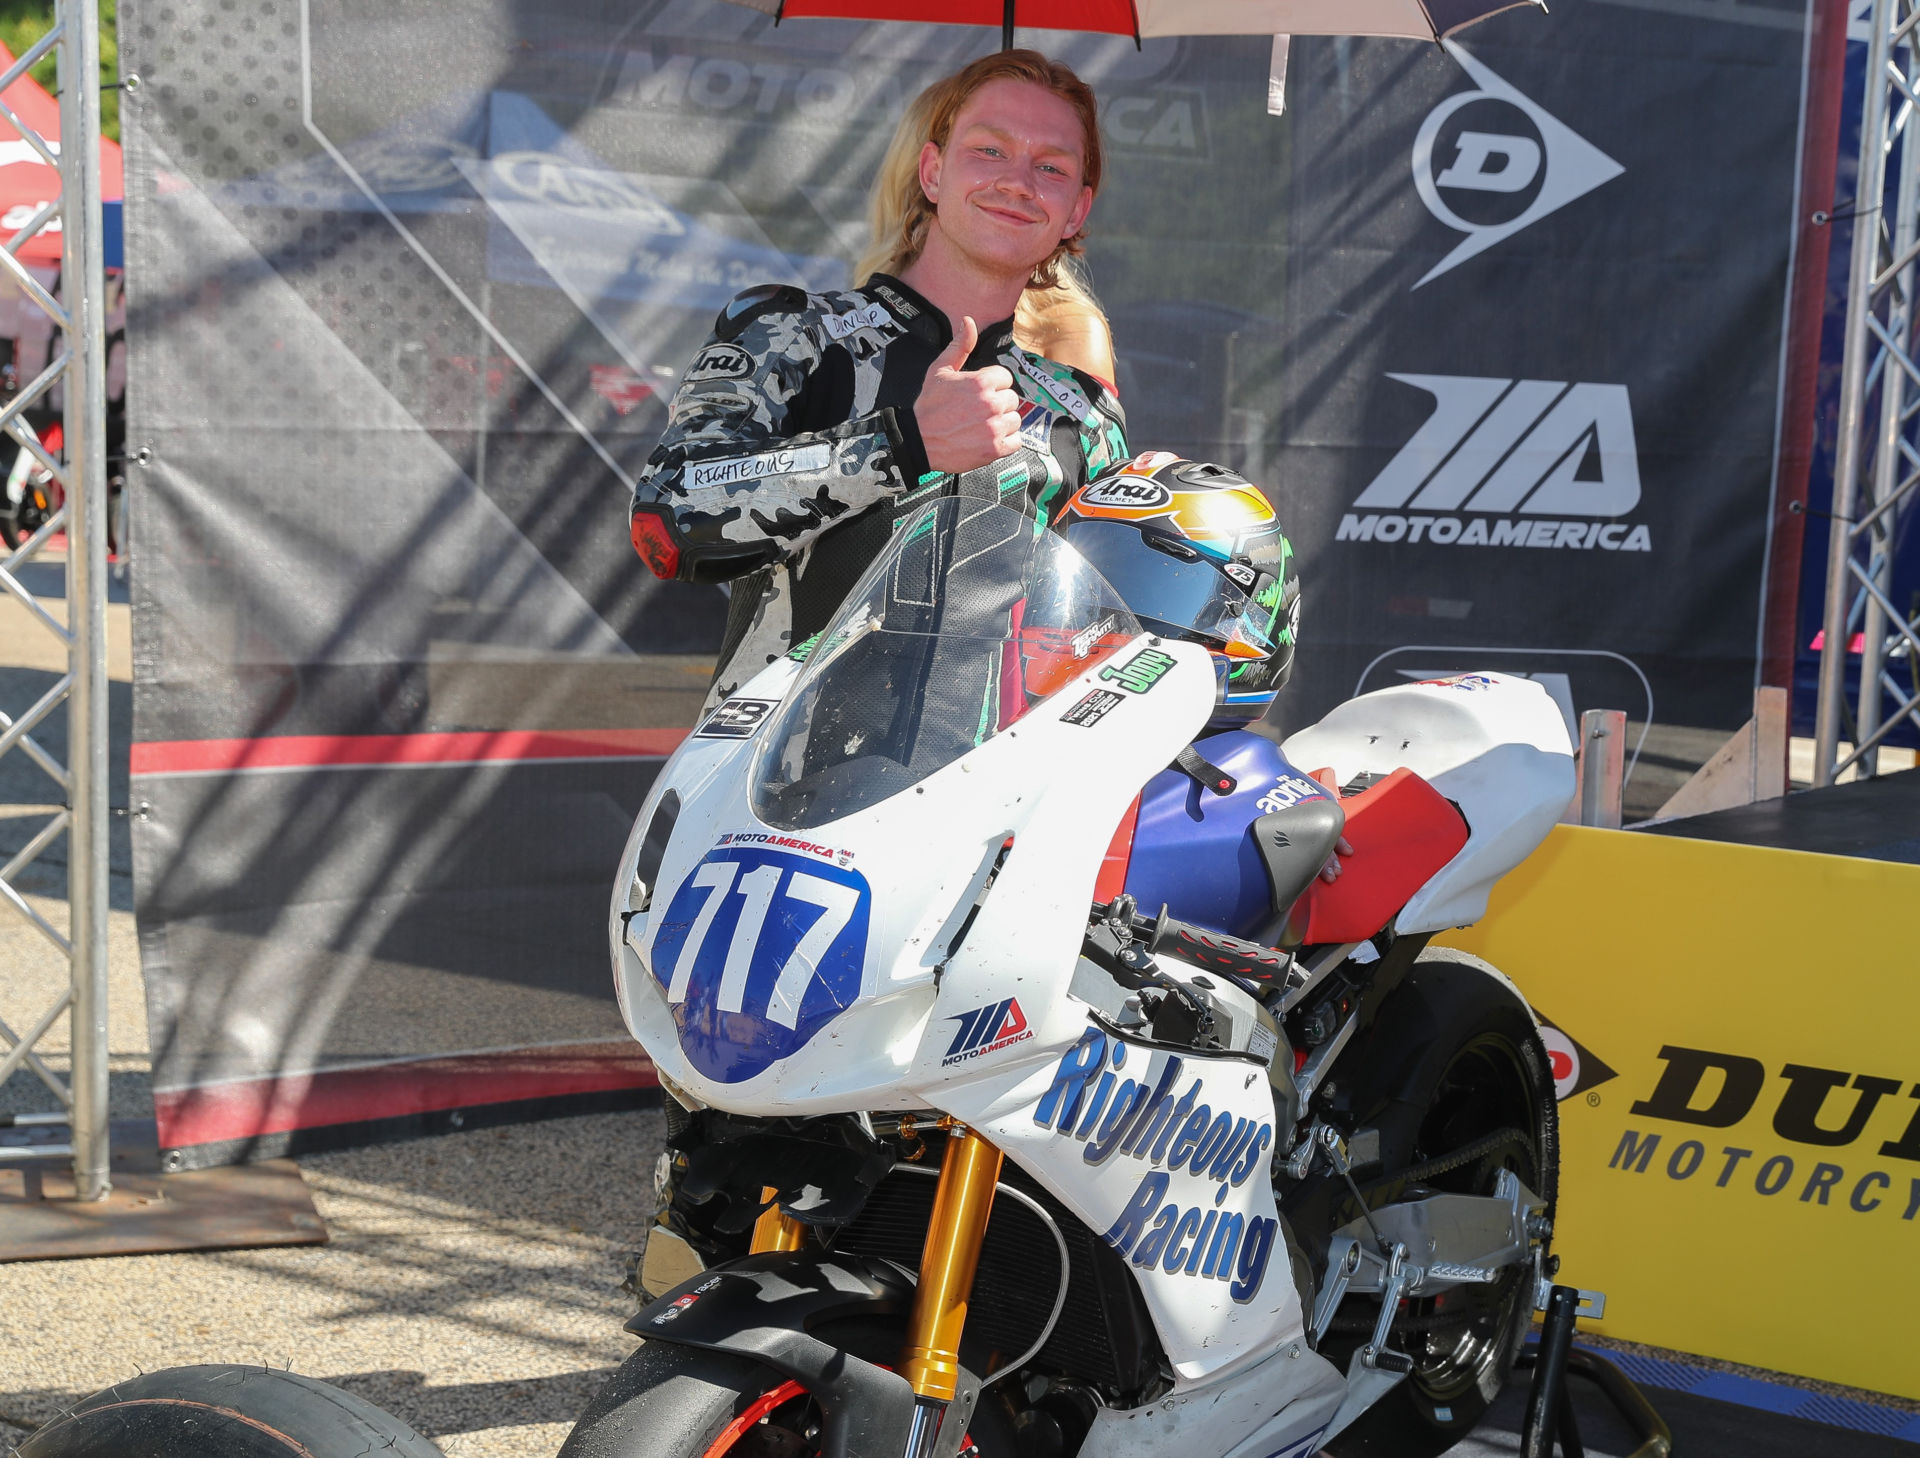 Jody Barry in victory circle after finishing second in MotoAmerica Twins Cup Race One at Road Atlanta. Photo by Brian J. Nelson.